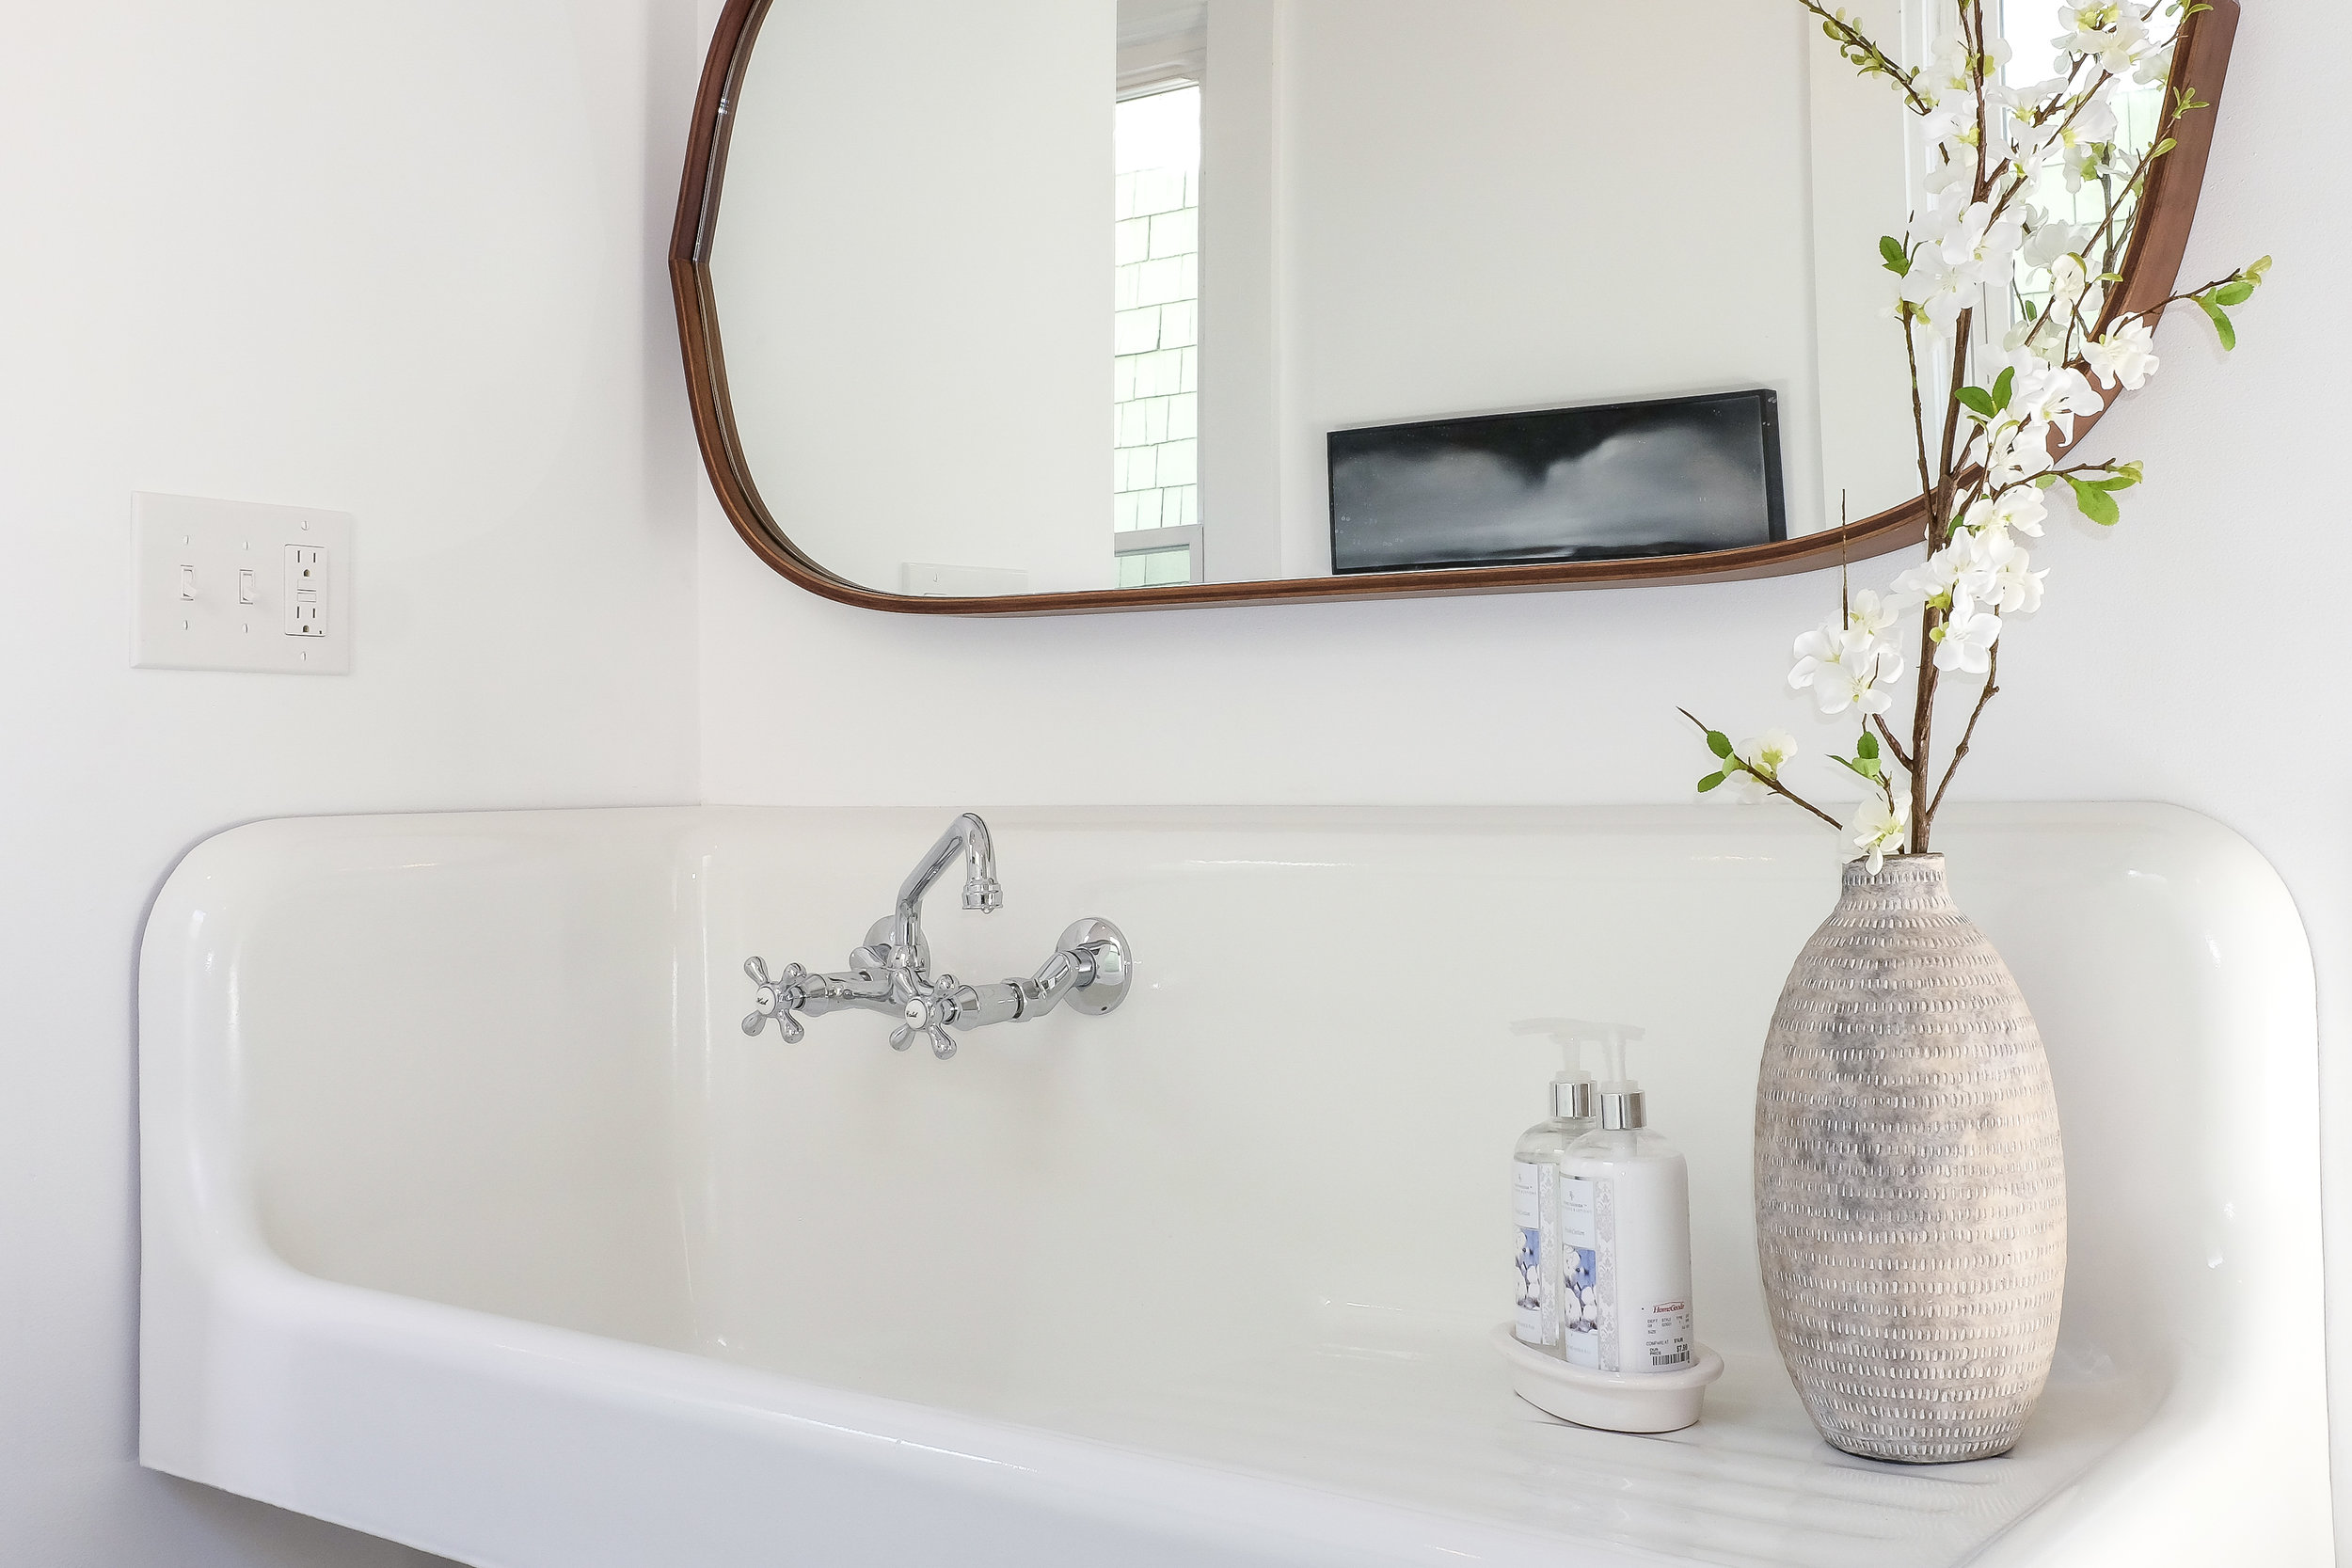 Farmhouse Sink Salvaged with reglazing